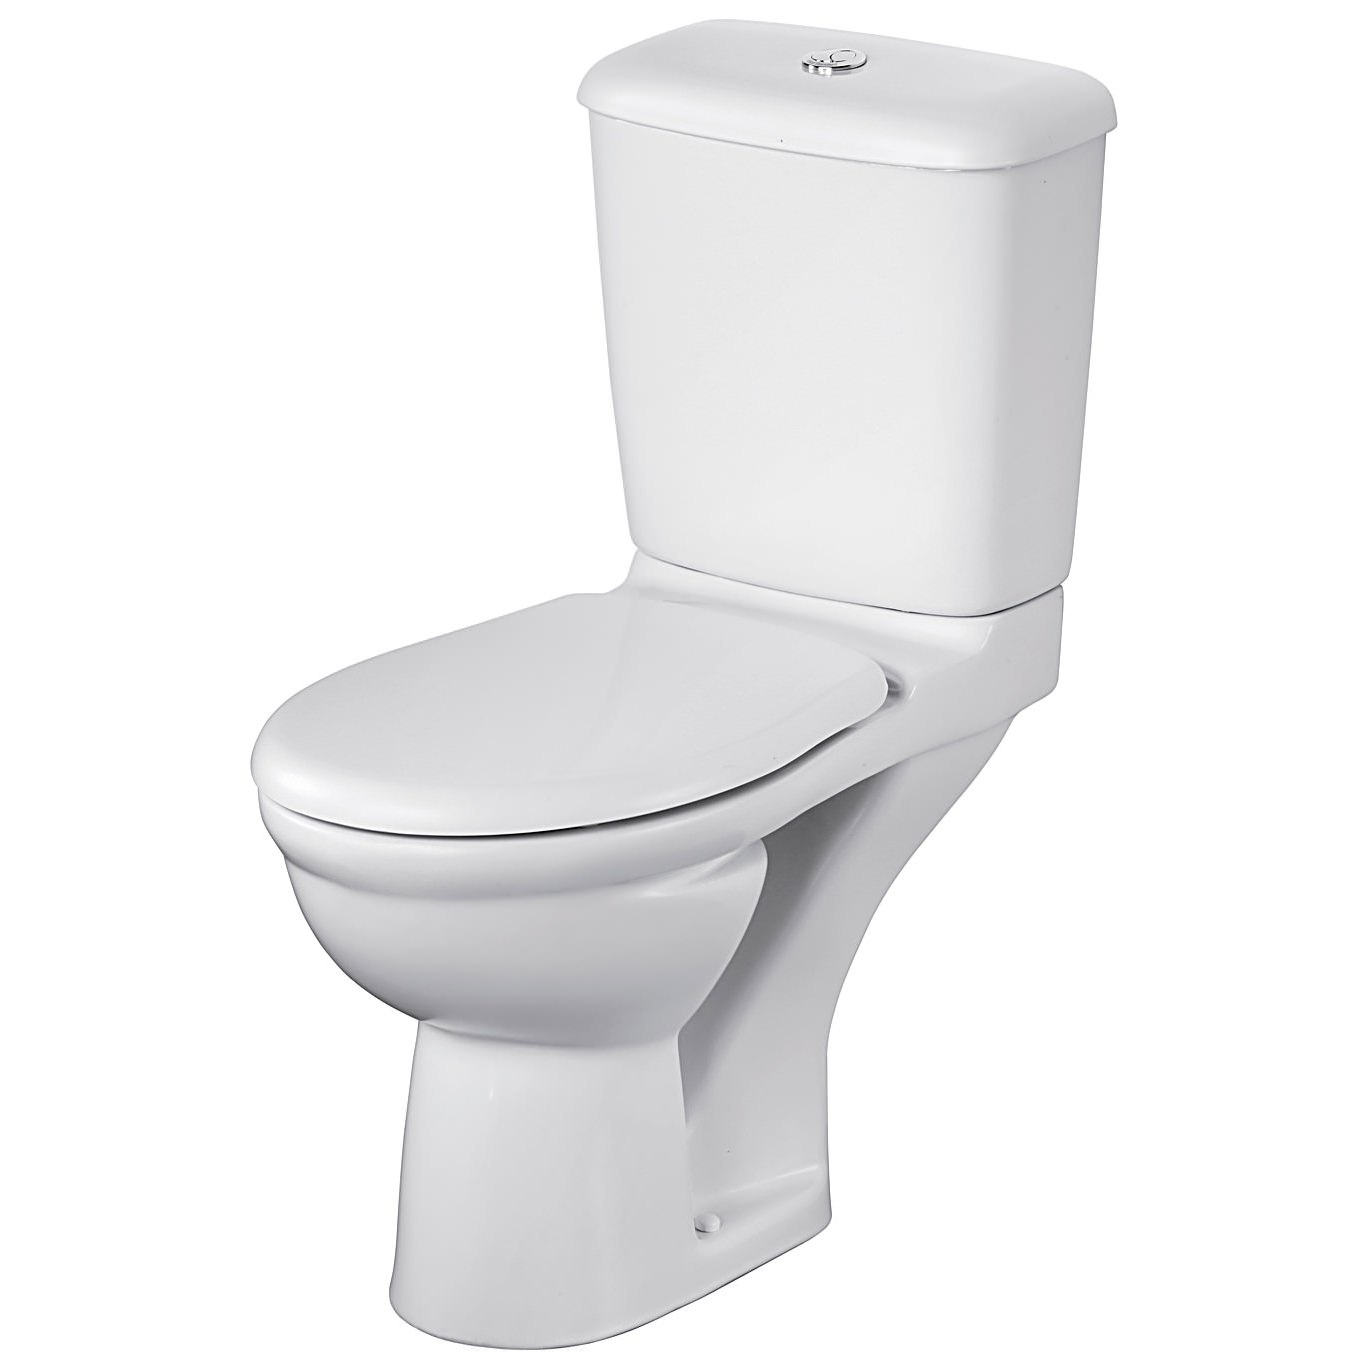 Gäste Wc Waschtisch Ideal Standard Ideal Standard Alto Close Coupled Wc Pan 685mm E754301